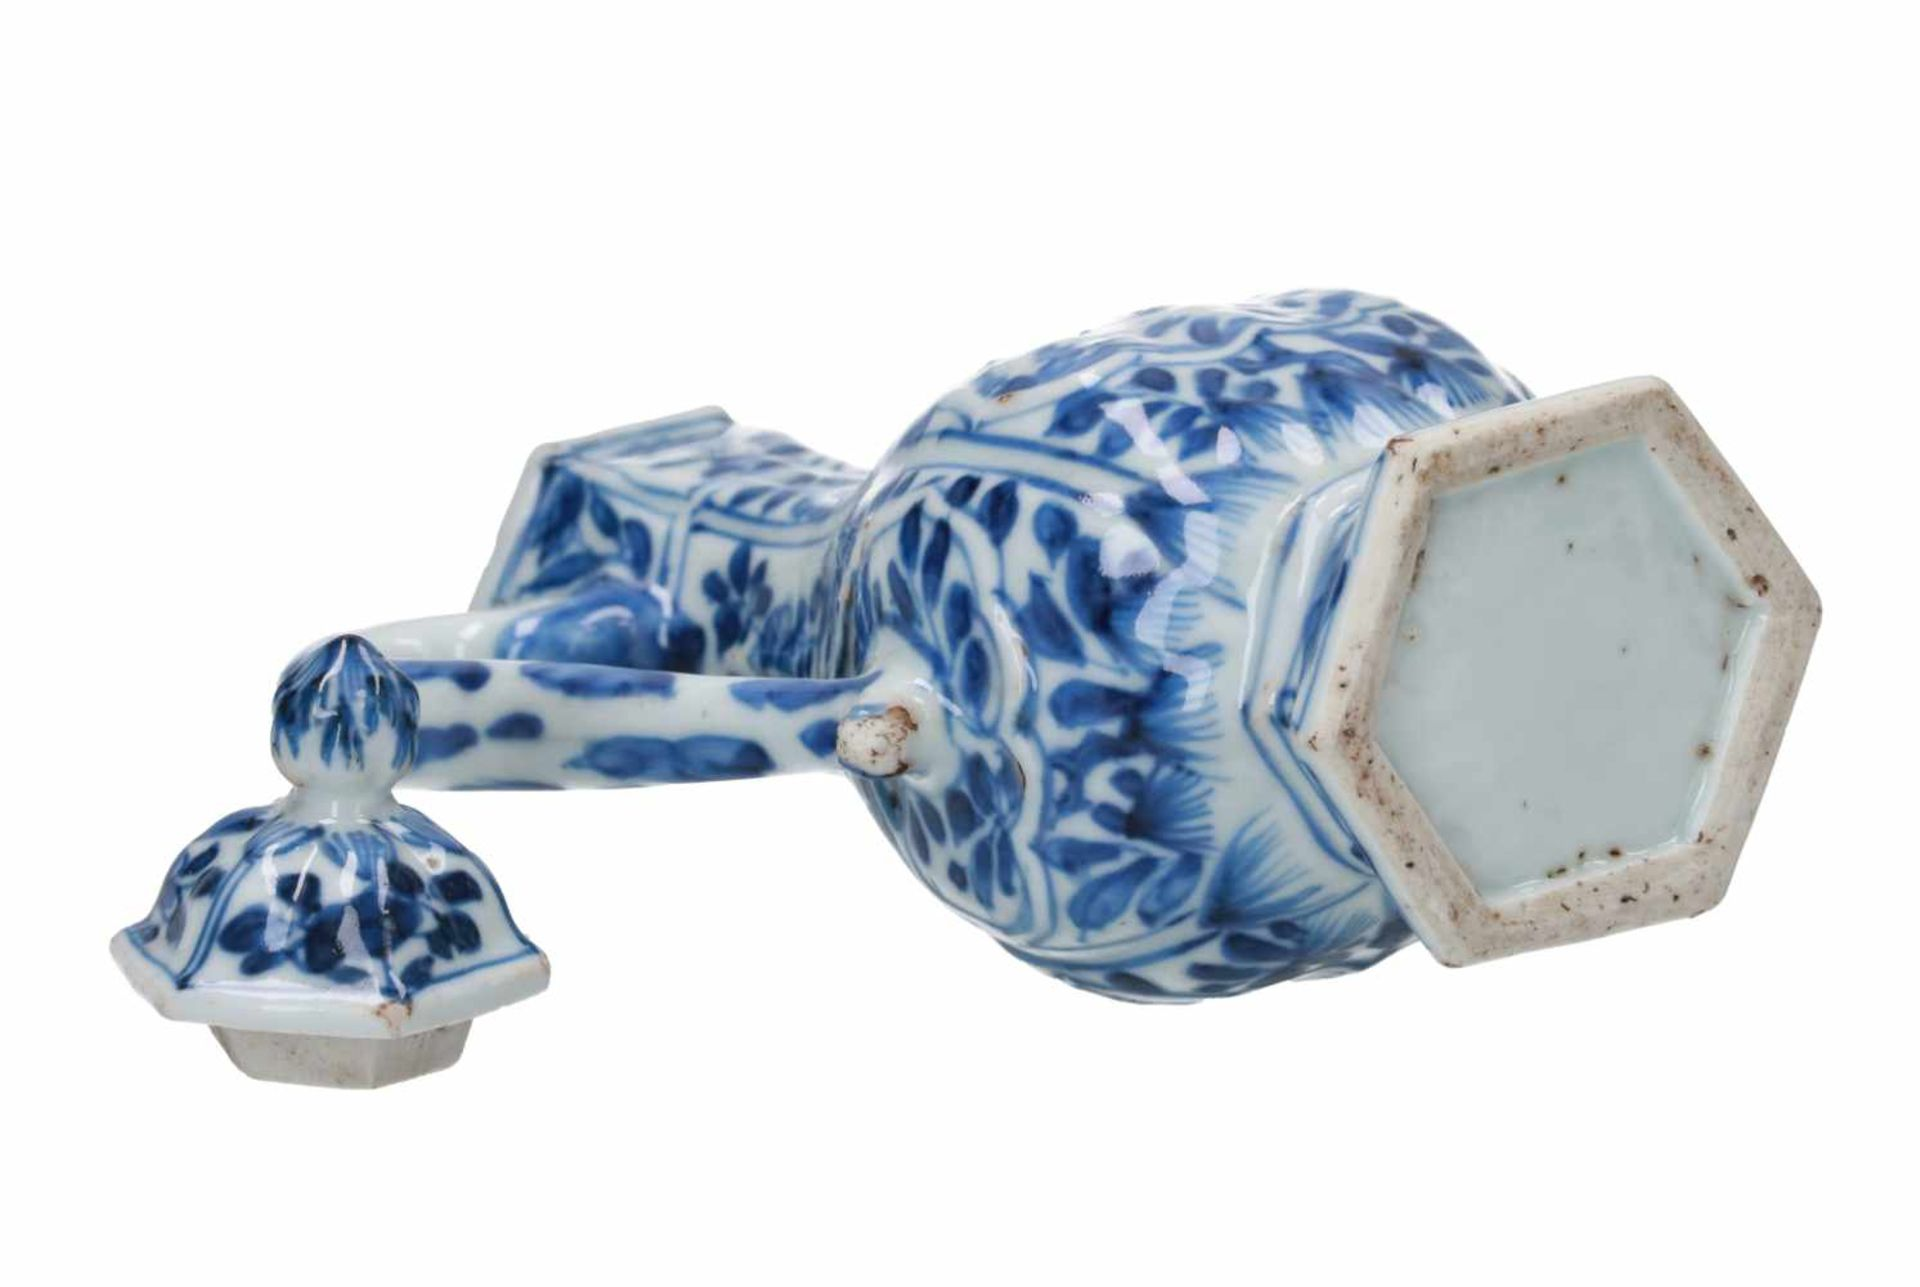 A hexagonal blue and white porcelain wine jar for the Persian market, decorated with flowers and a - Bild 3 aus 5